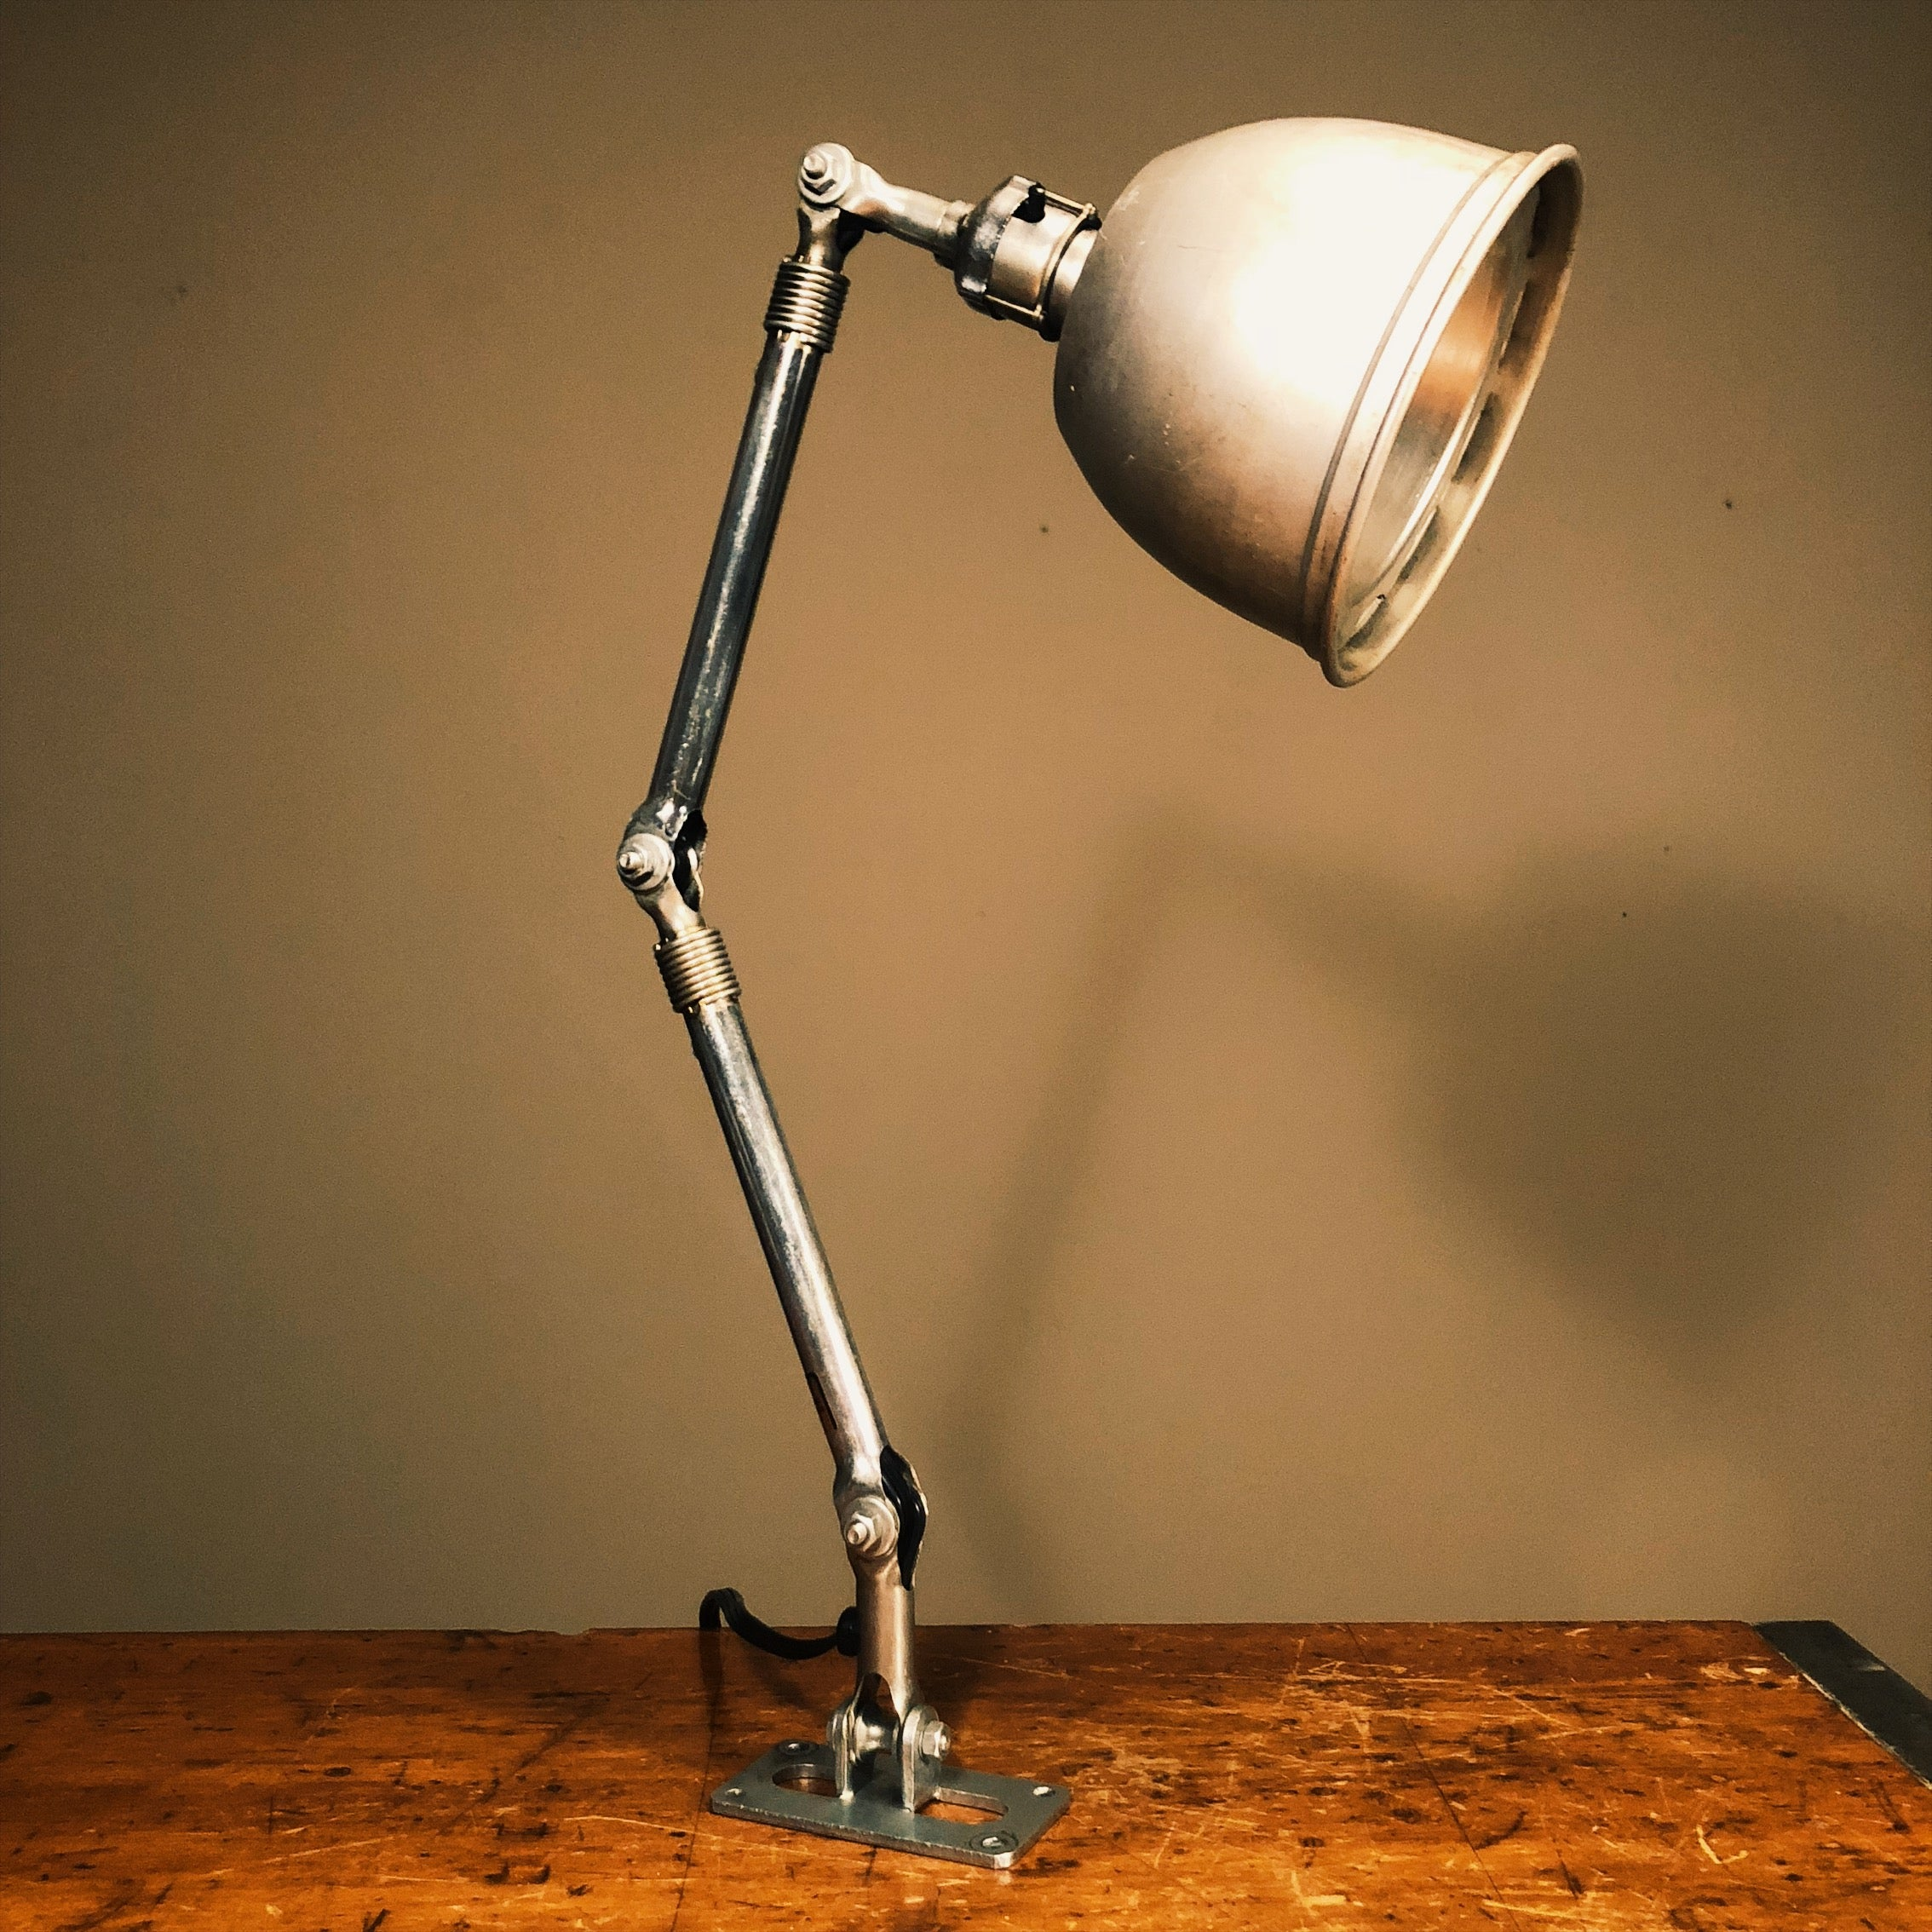 Vintage Ajusco Industrial Light with Insulated Shade and Wall Mount 2